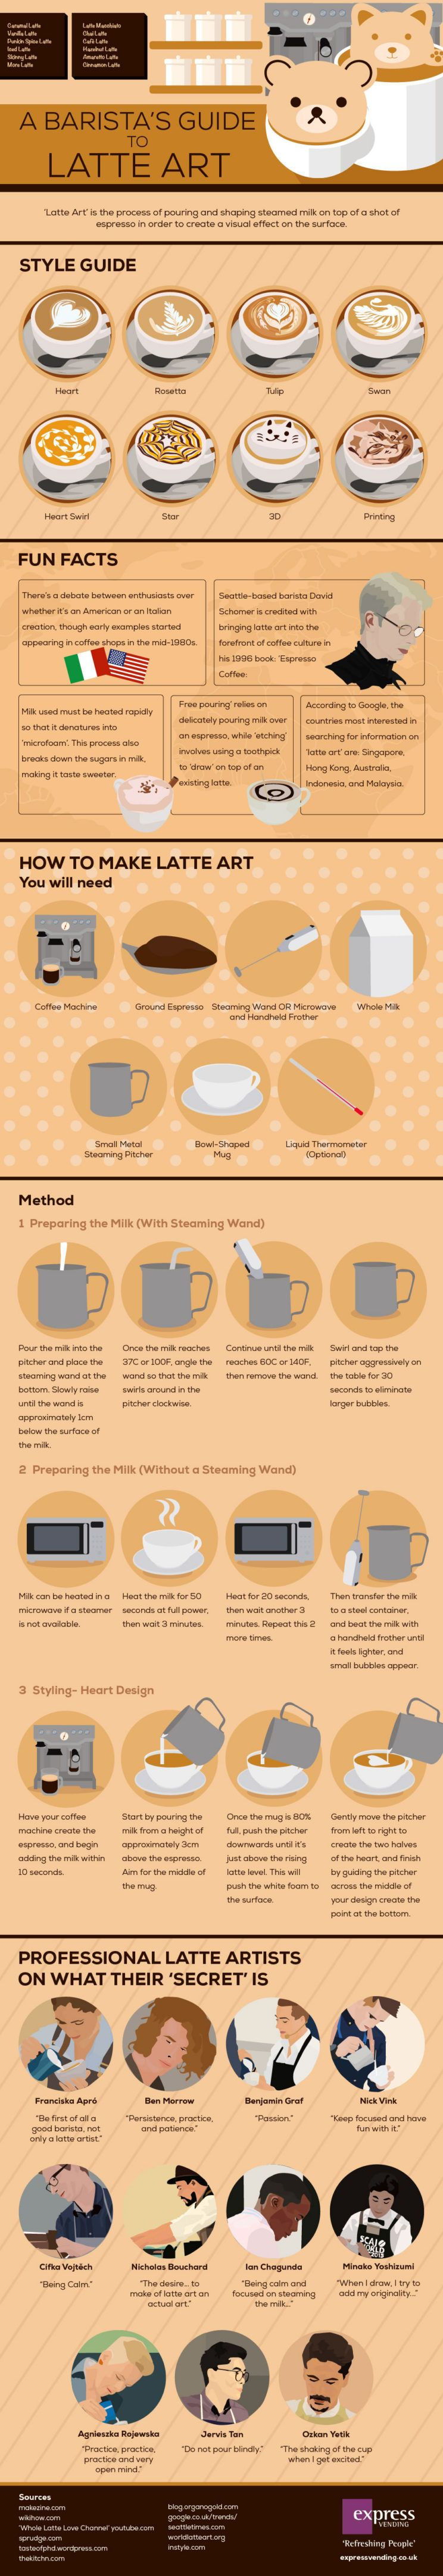 A barista's guide to latte art #infographic